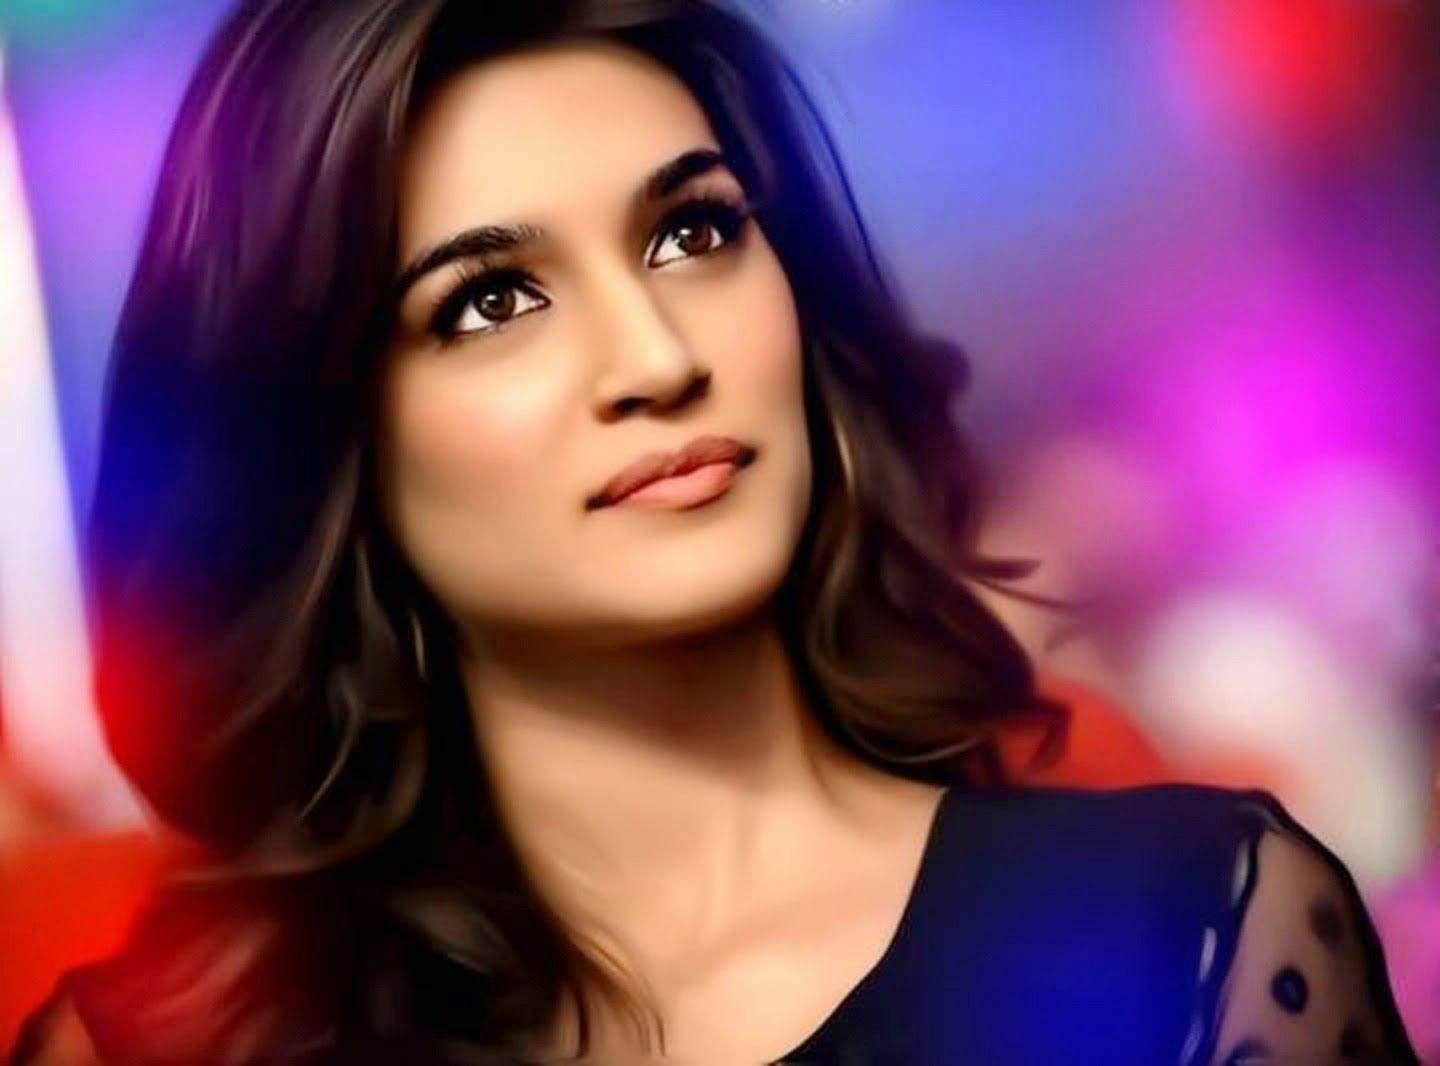 Kriti sanon images hd wallpaper all 4u wallpaper - 30 Best Kriti Sanon Hd Wallpapers And Photos Hd Wallpaper Beauty Queens And Actresses